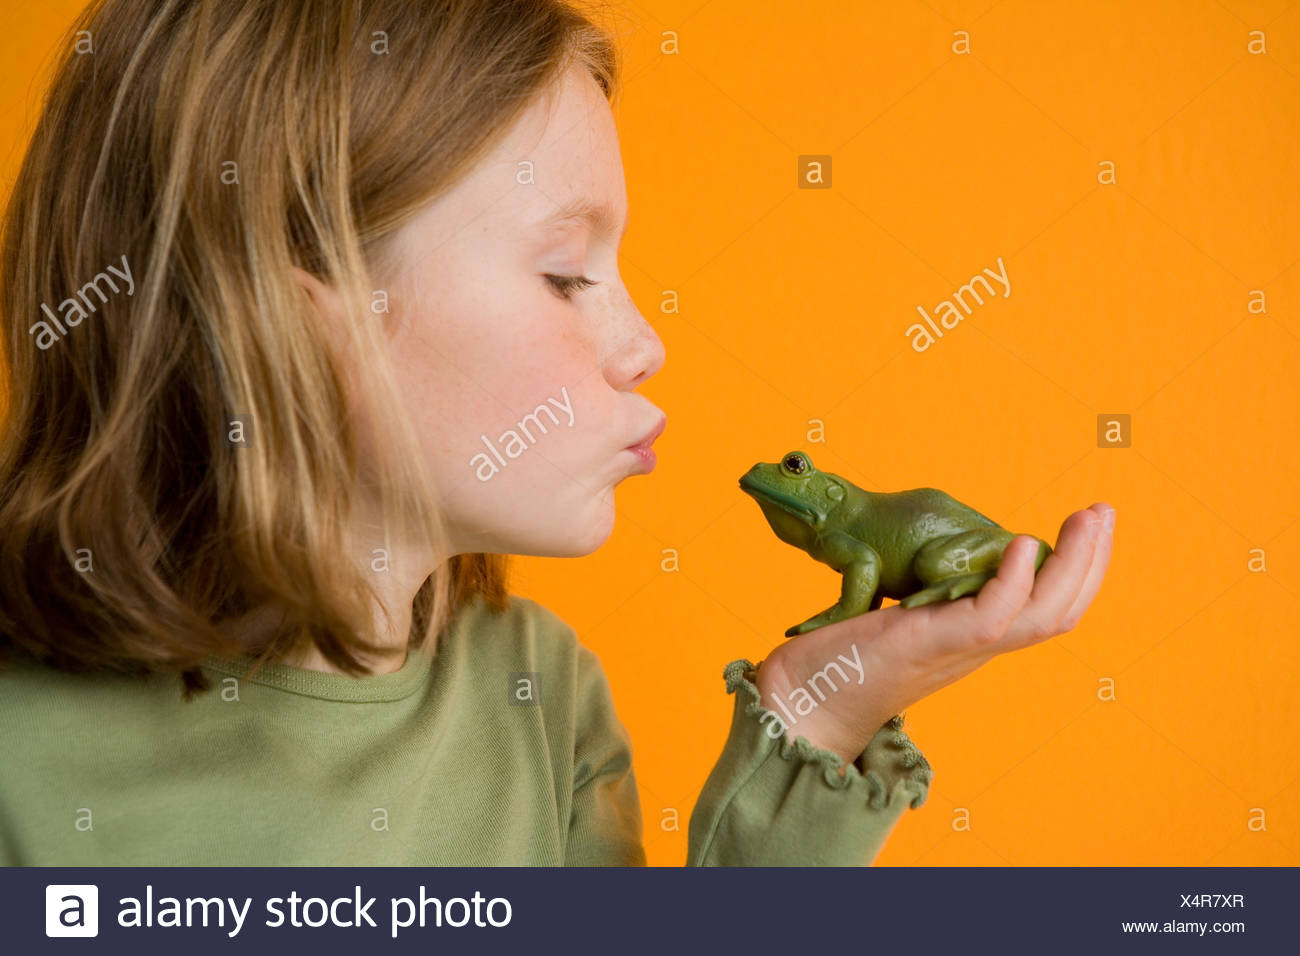 Girl Girl Kissing Frog Stock Photos Girl Frogsing Frog Stock Images - Alamy-3862